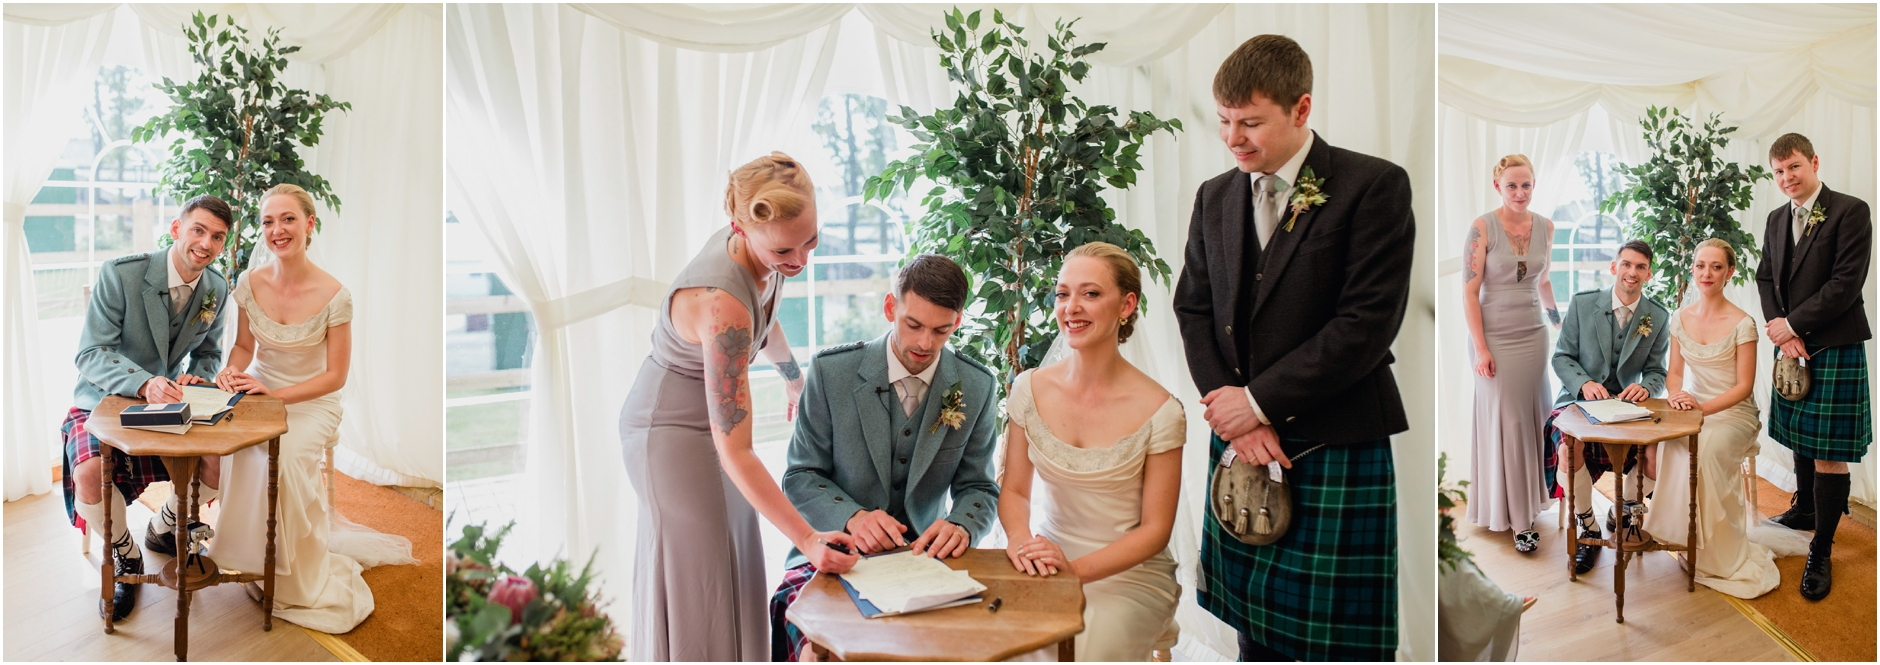 elegant vintage style wedding at boswell coach house ayrshire